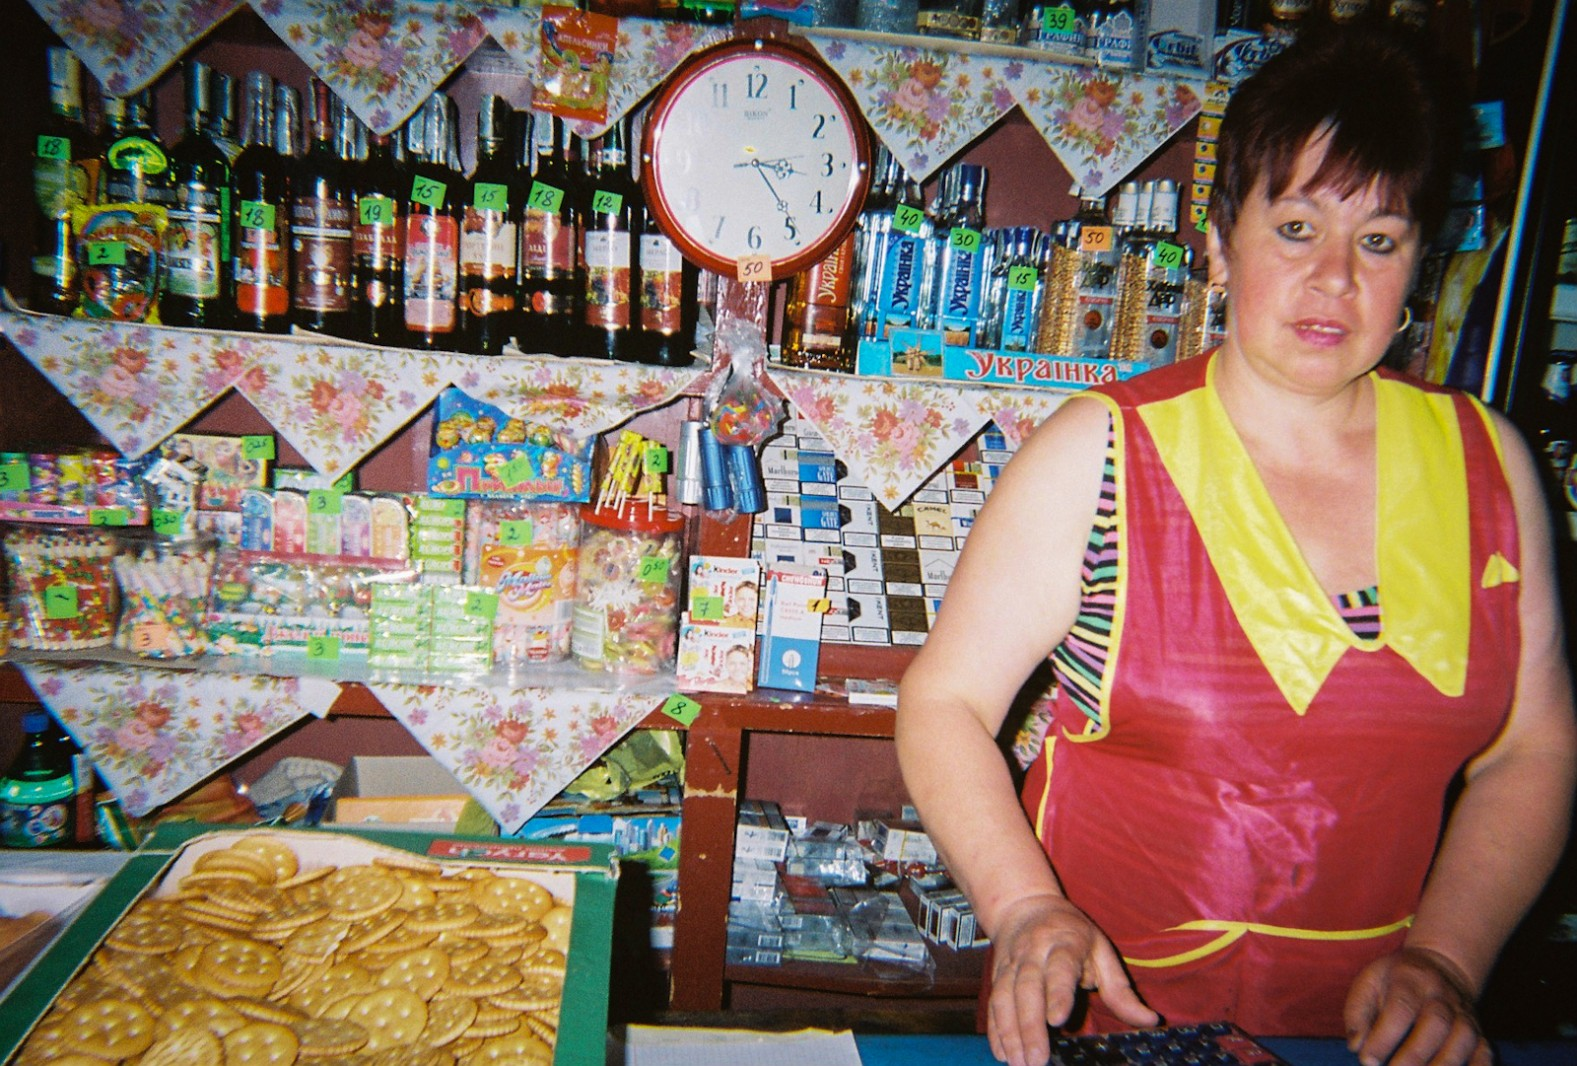 The local store in a village near Chernobyl